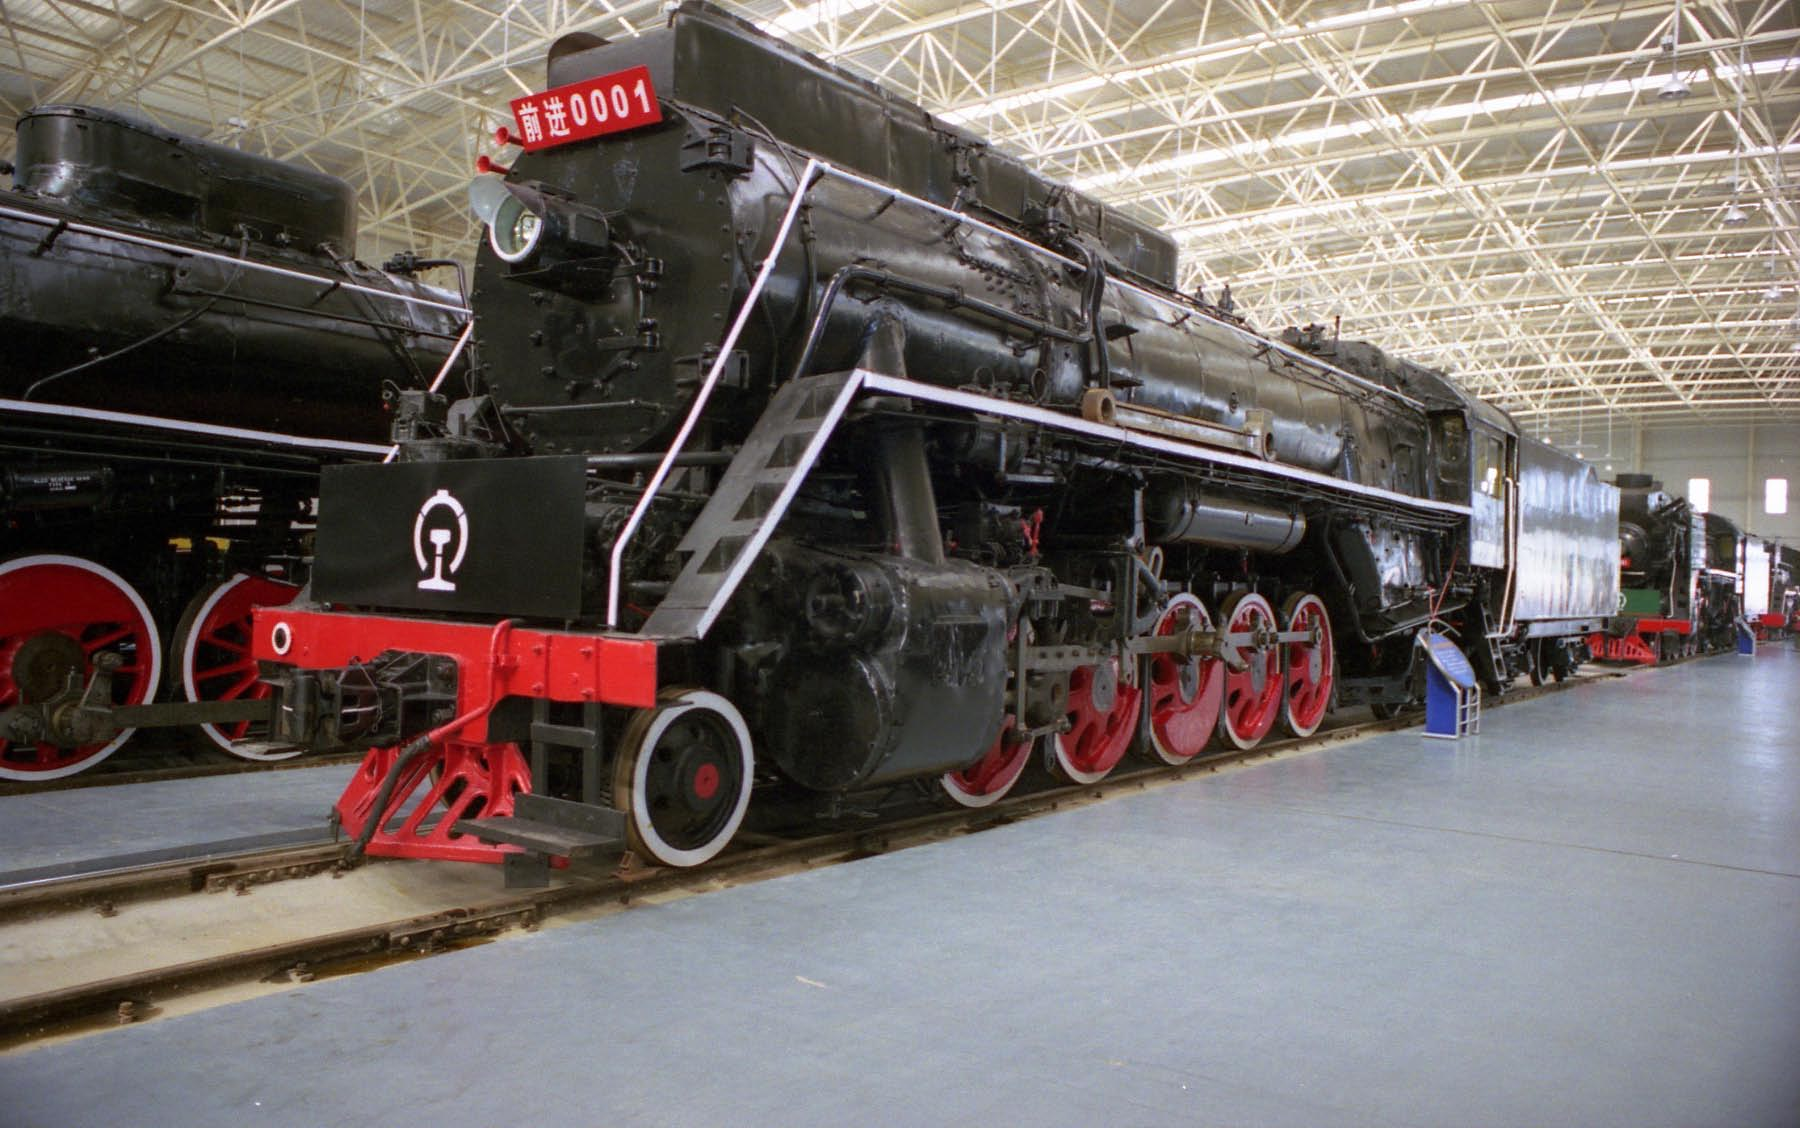 Exhibits inside the Beijing Railway Museum